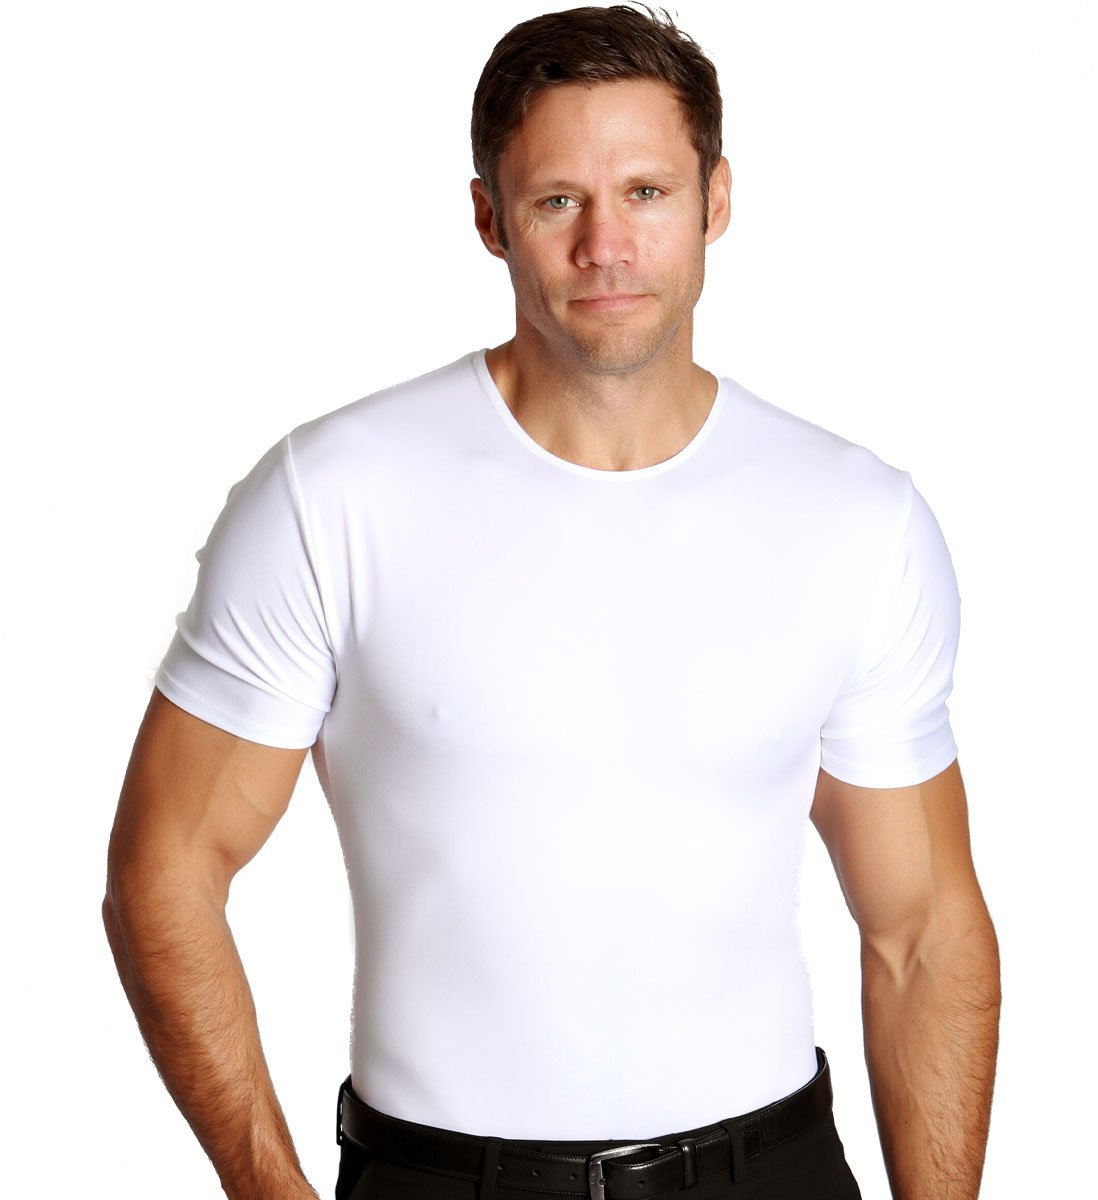 Insta Slim Men's Compression Crew-Neck T-Shirt (Large, White), The Magic Is In The Fabric! by Insta Slim (Image #2)